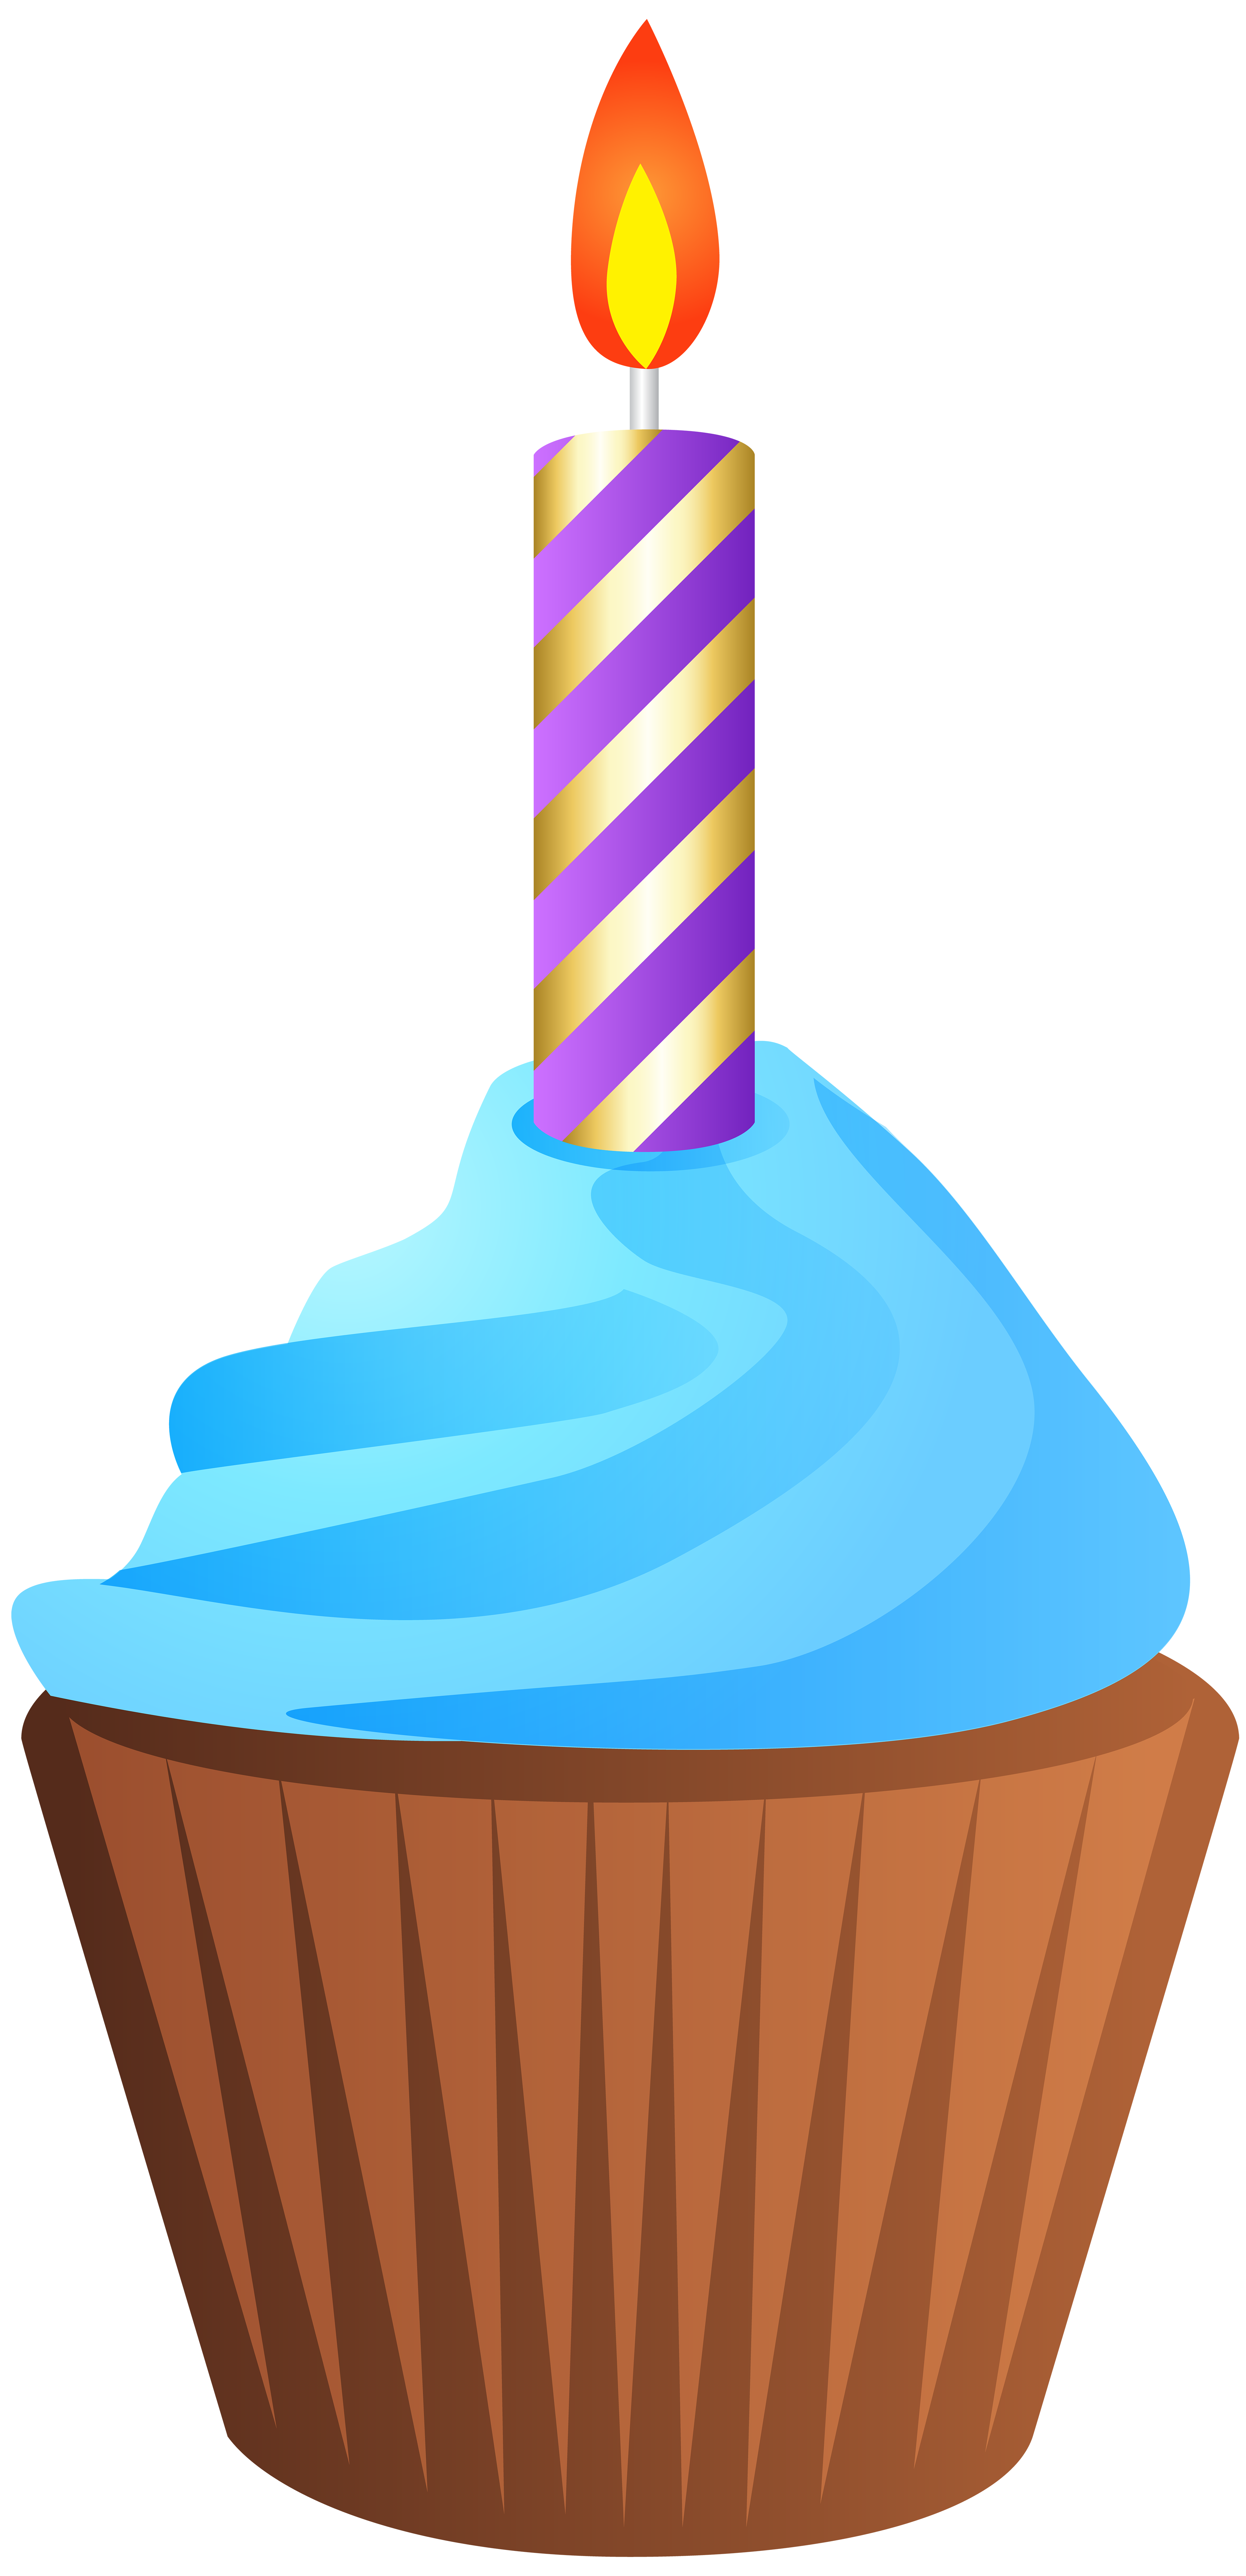 3869x8000 Birthday Muffin With Candle Transparent Png Clip Art Image